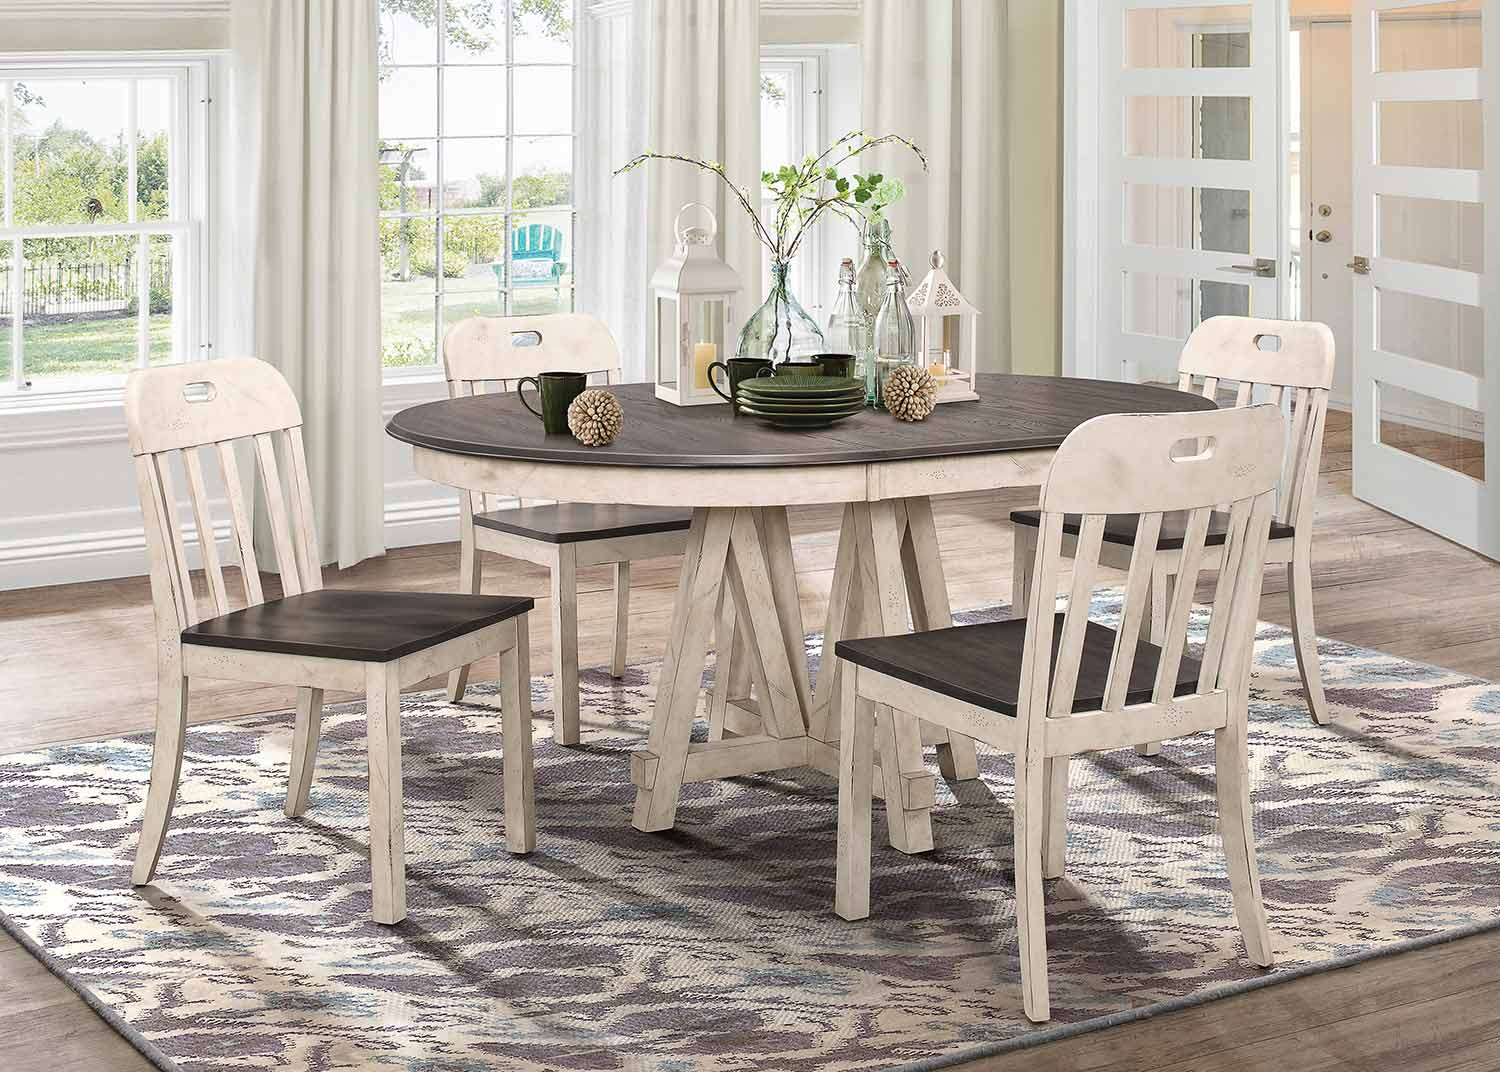 Homelegance Clover Round/Oval Dining Set - Rustic Gray